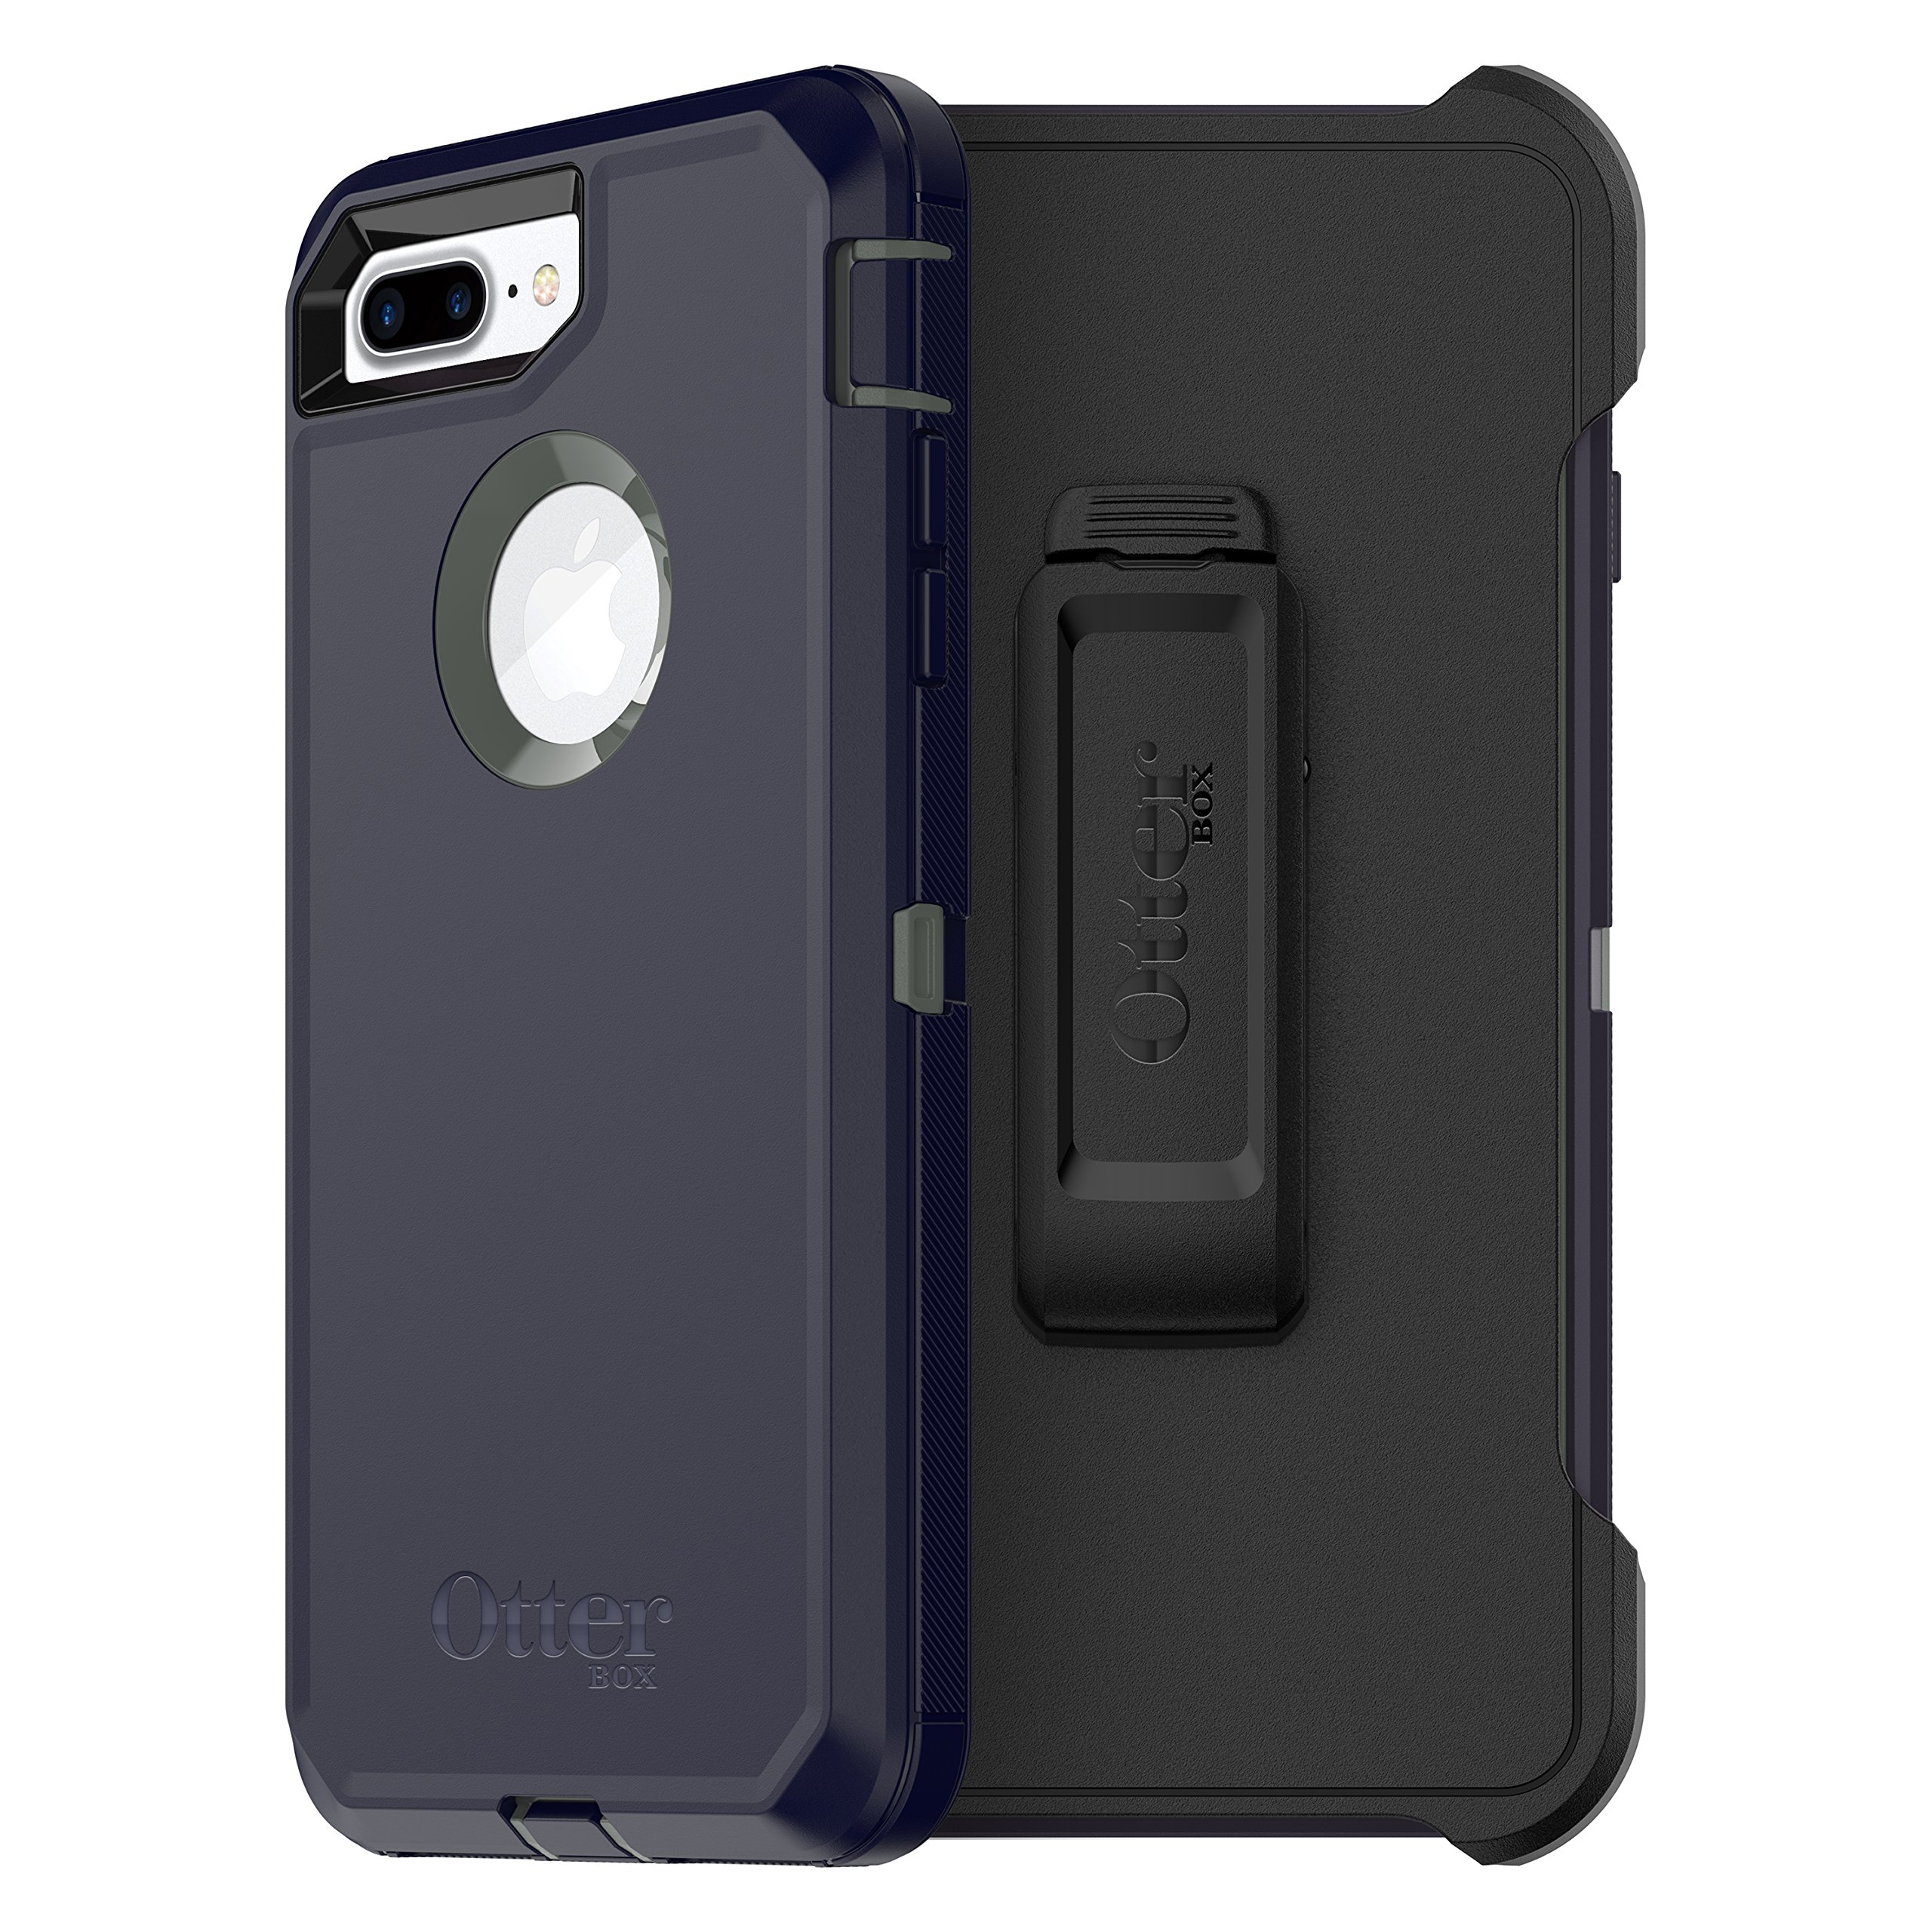 Otterbox Defender Series Case for  Iphone 8 Plus & Iphone 7 Plus  - Frustration Free Packaging - Stormy Peaks (Agave Green/Maritime Blue)